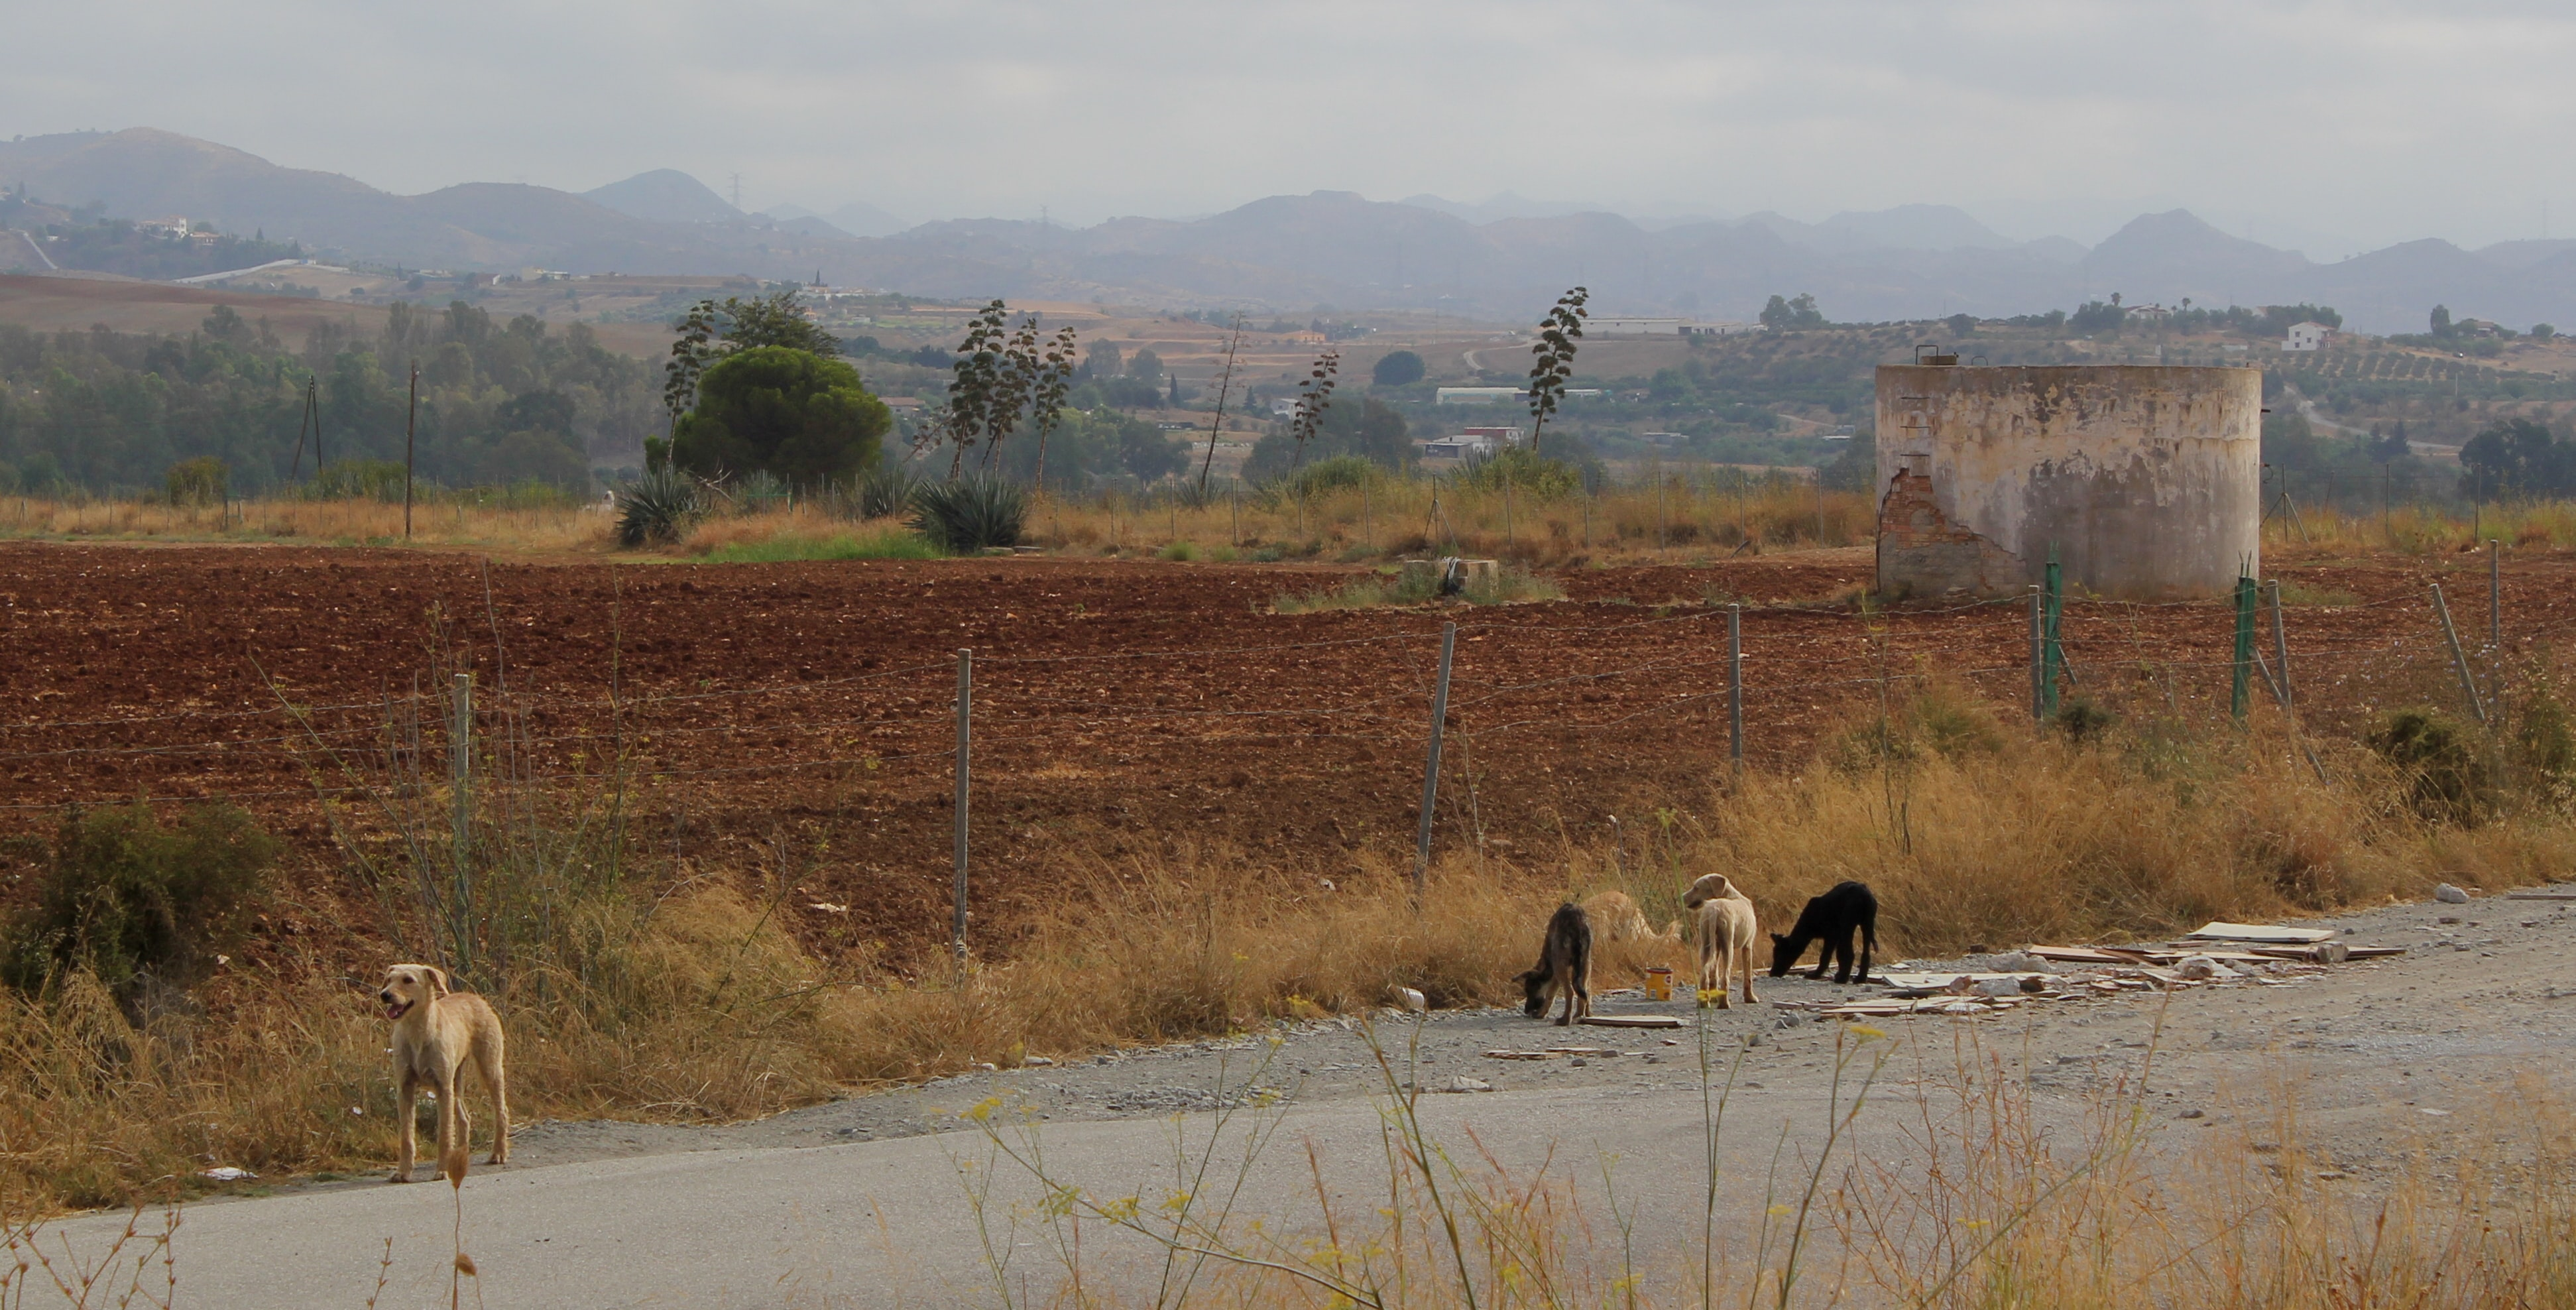 pack of black and fawn dogs on road